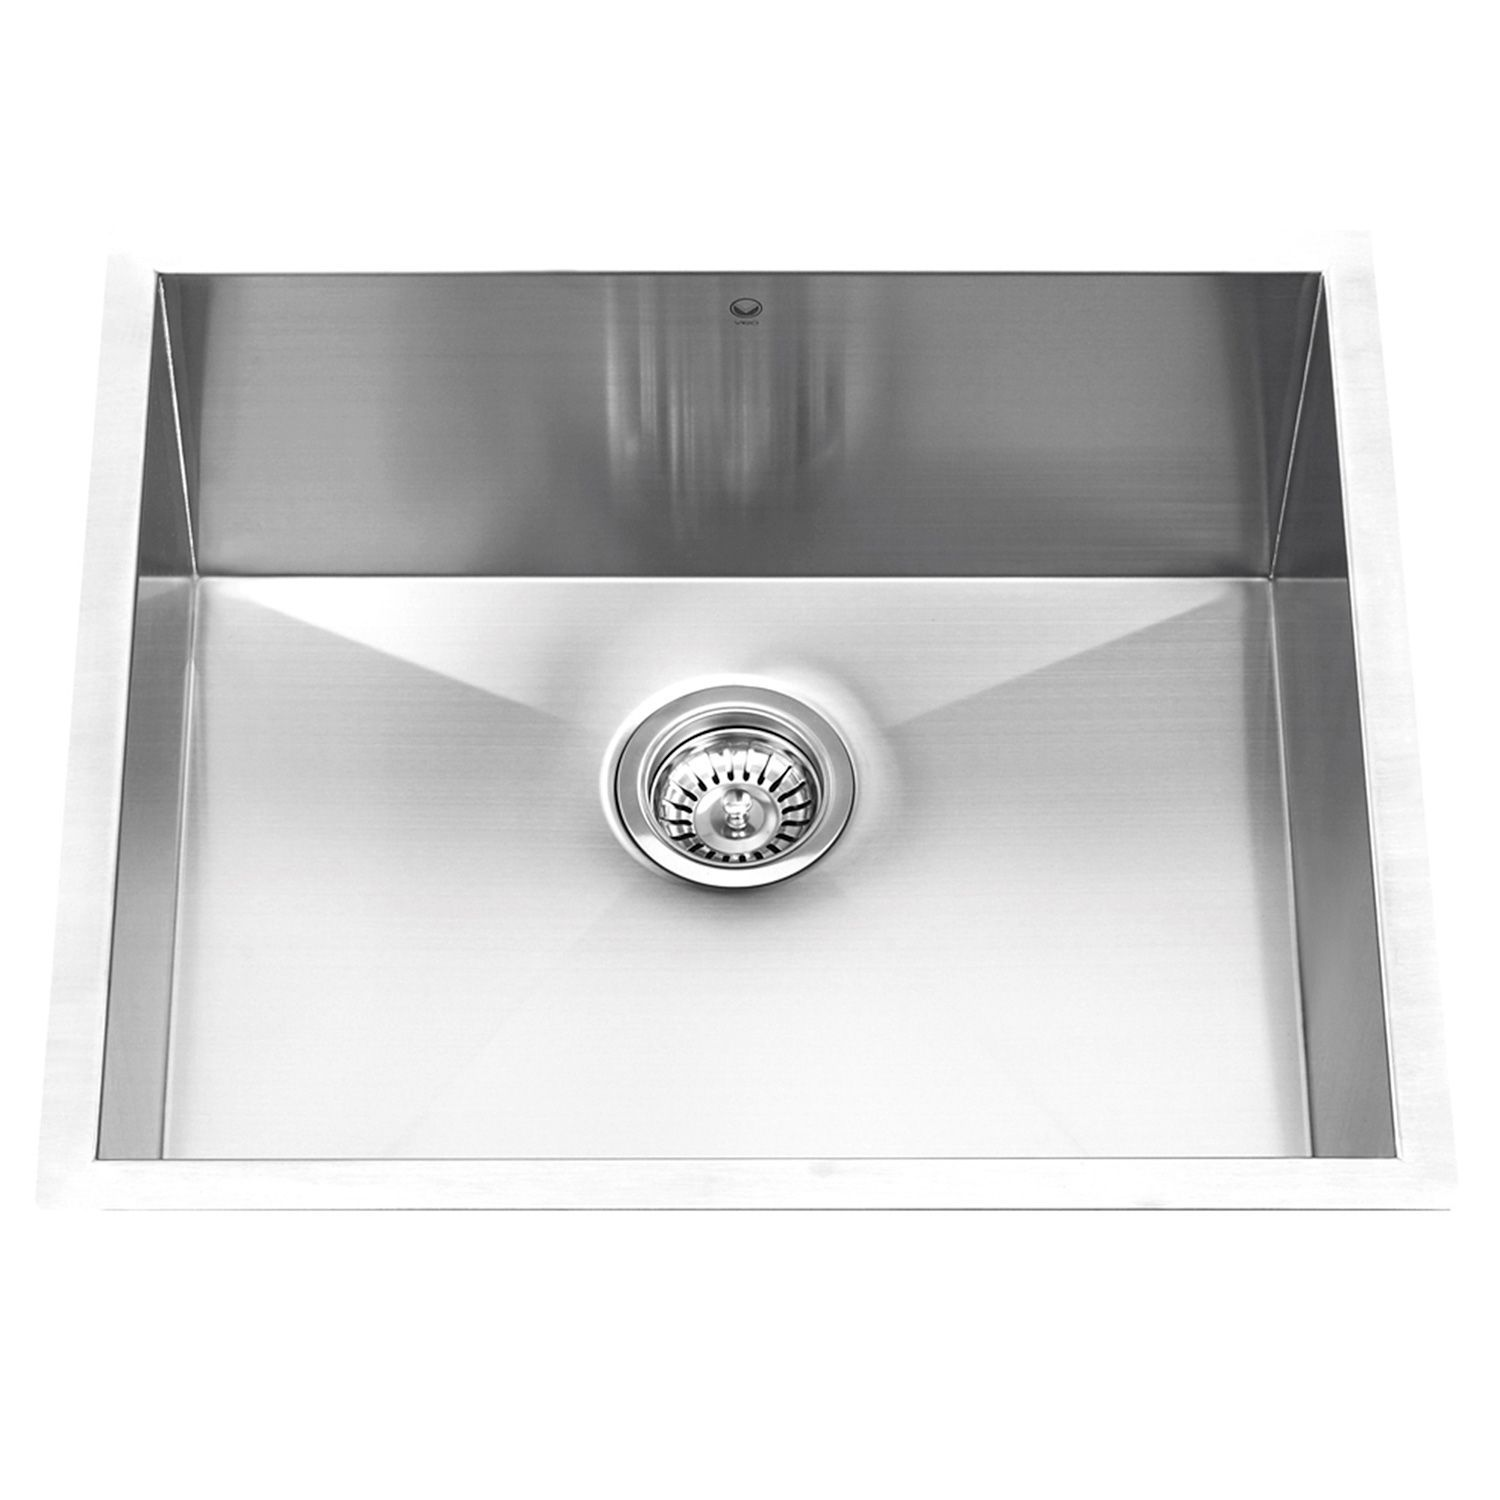 Vigo 23 Undermount Stainless Steel 16 Gauge Single Bowl Kitchen Single Bowl Kitchen Sink Stainless Steel Kitchen Sink Undermount Stainless Steel Kitchen Sink